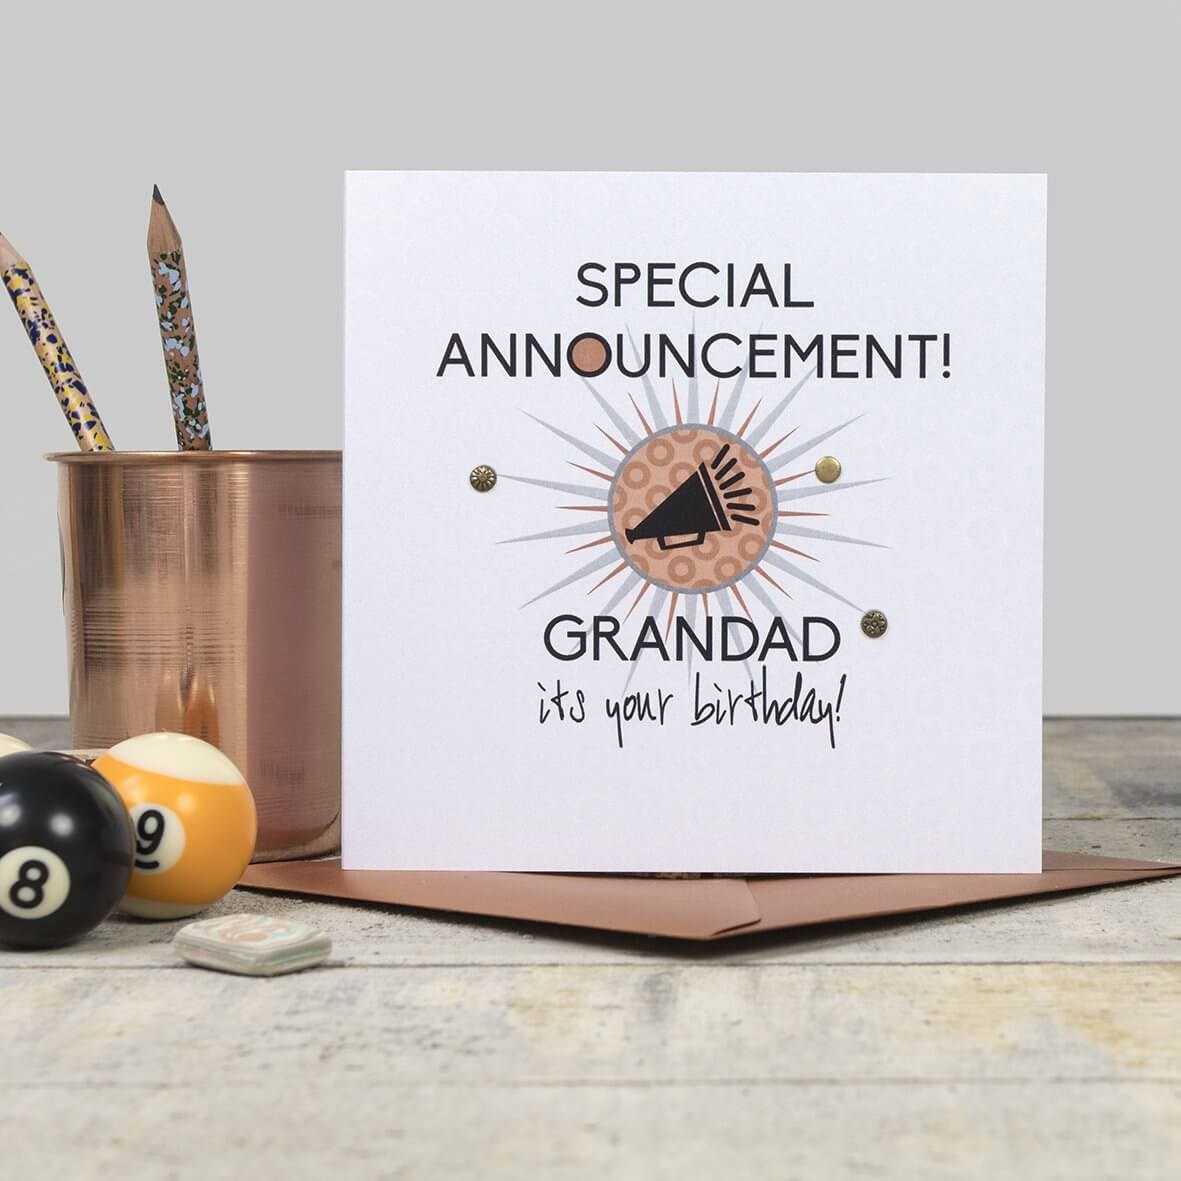 Special Announcement - Grandad it's your Birthday!